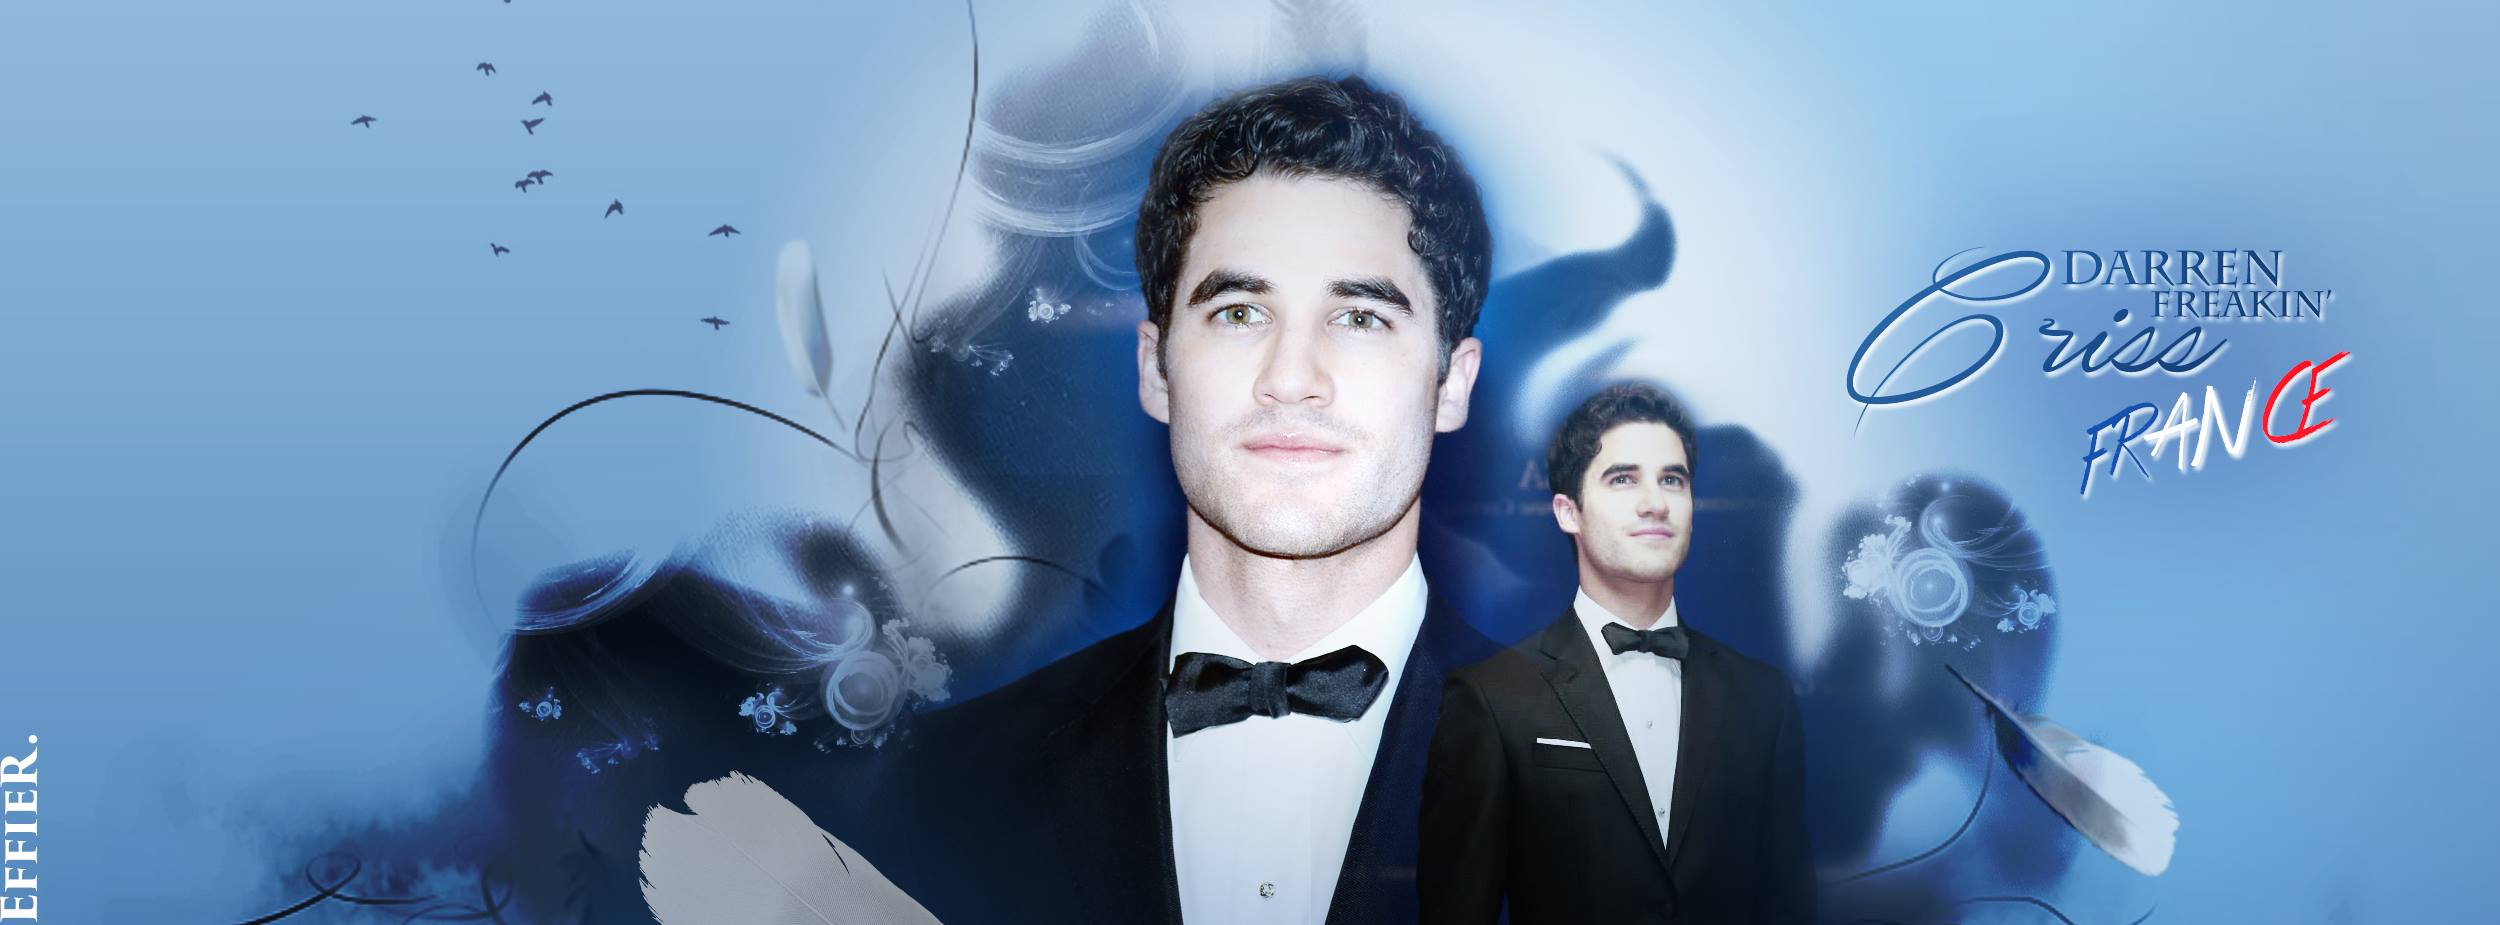 Darren Freakin' Criss France